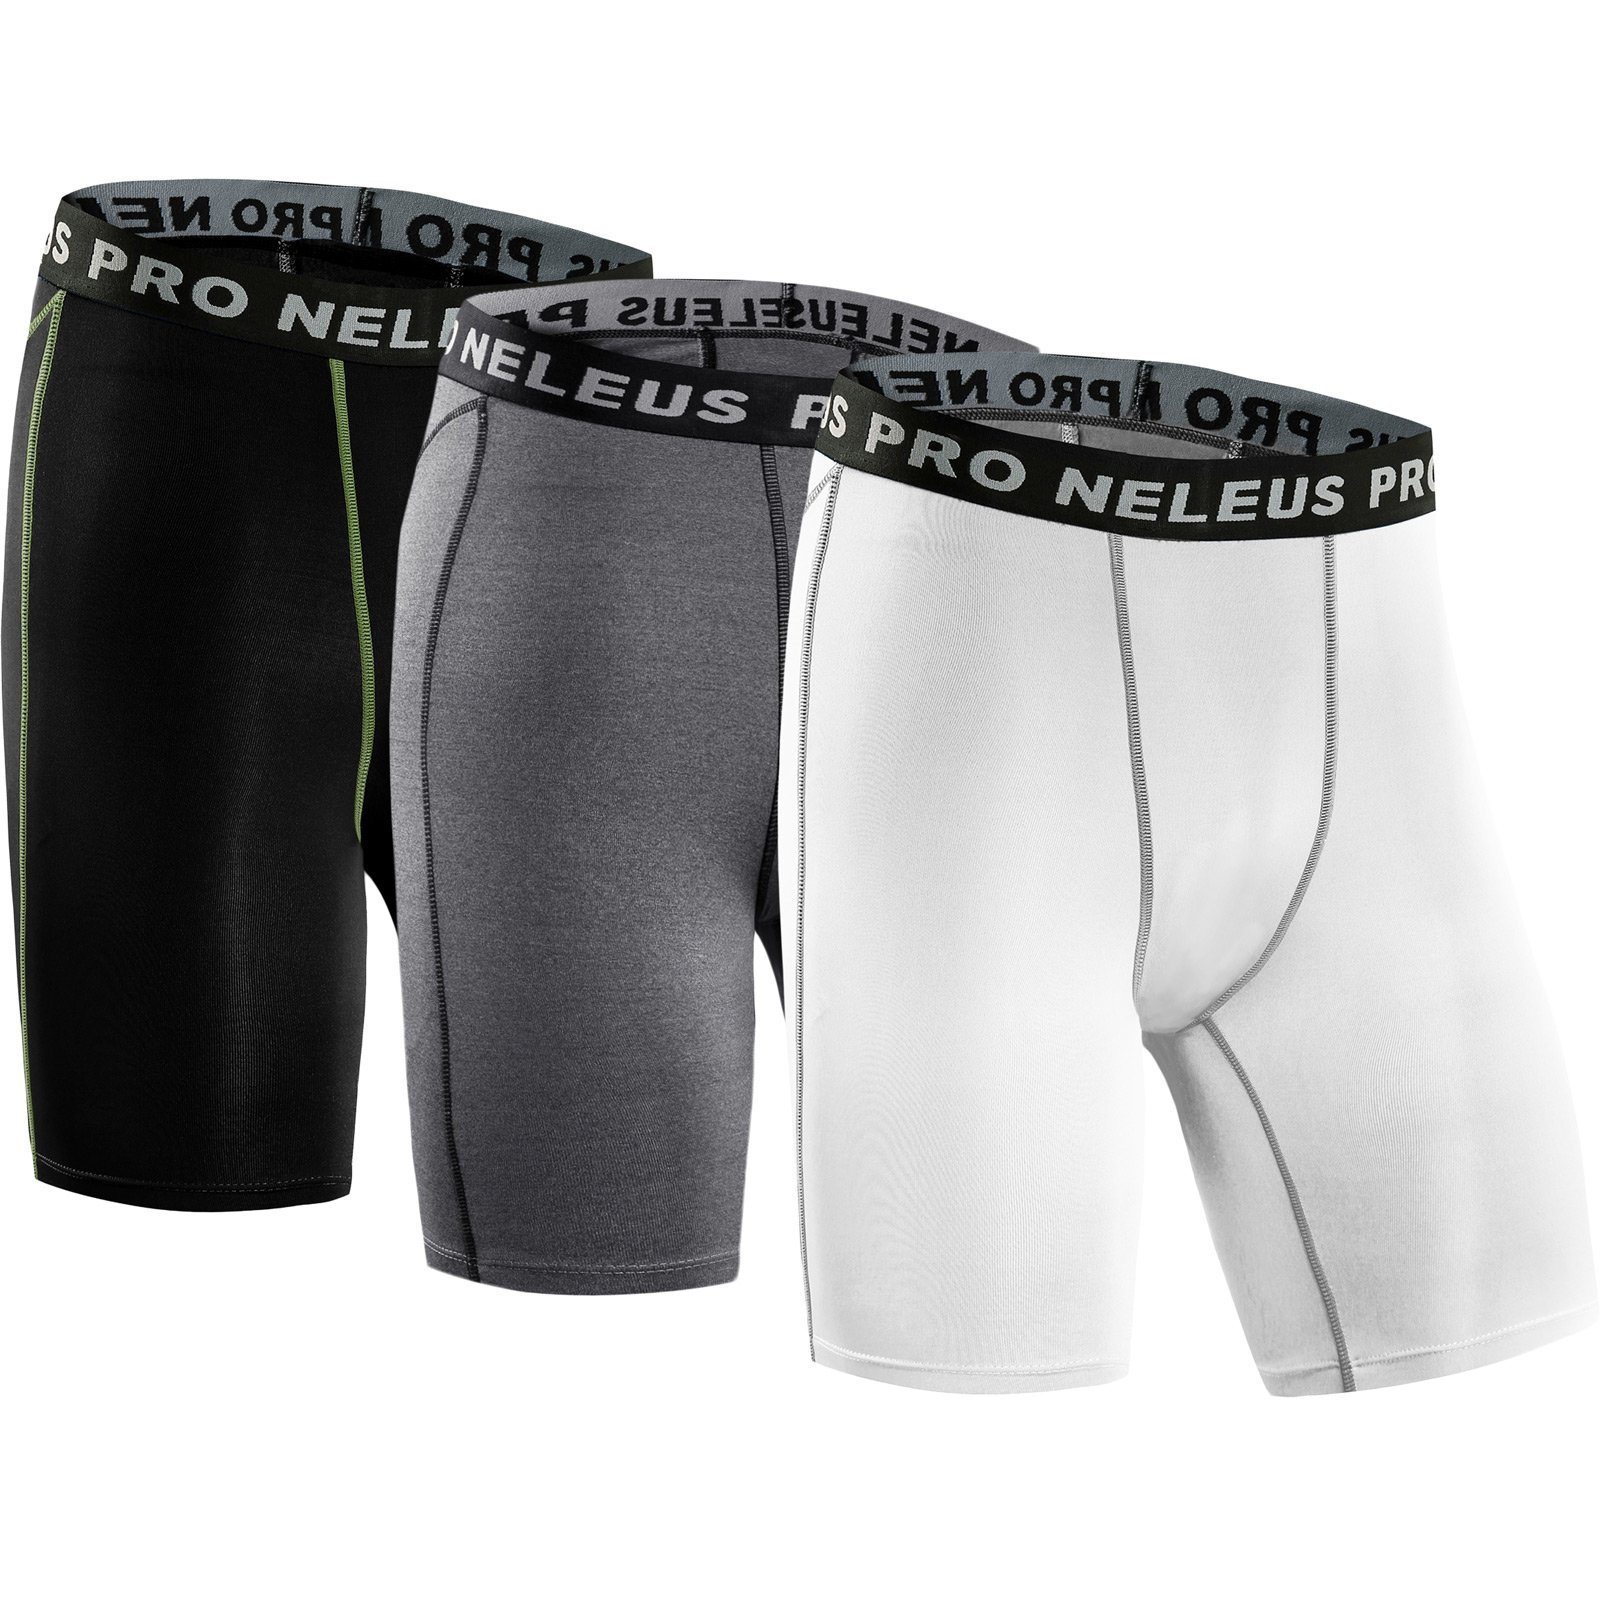 Neleus Men's 3 Pack Compression Short,047,Black,Grey,White,US M,EU L